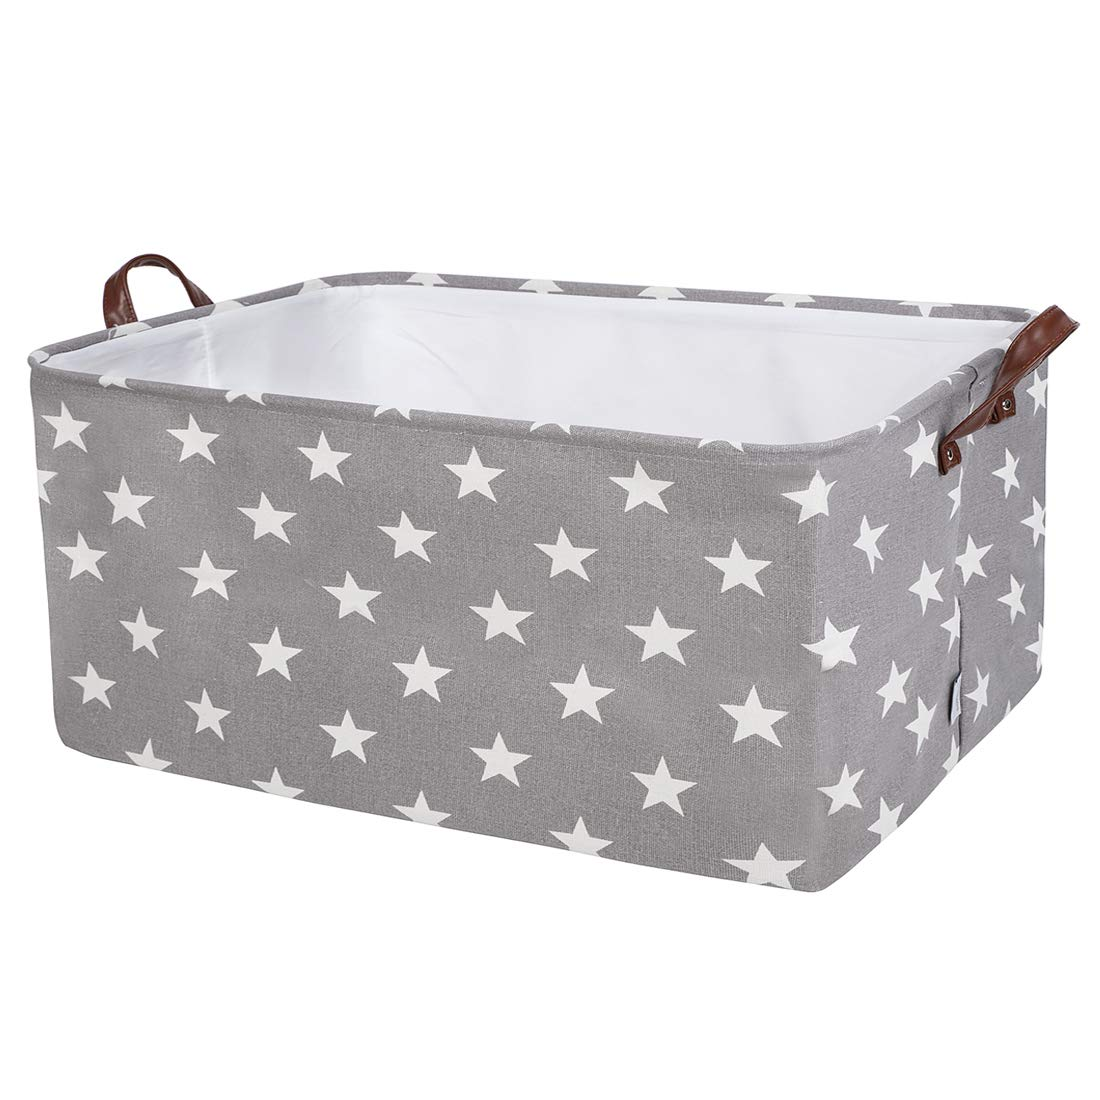 DOKEHOM DKA0622GSXL 22'' Thickened X-Large Storage Basket (8 Colors), Drawstring Canvas Underbed Storage, Square Cotton Linen Collapsible Toy Basket (Grey Star, XL)